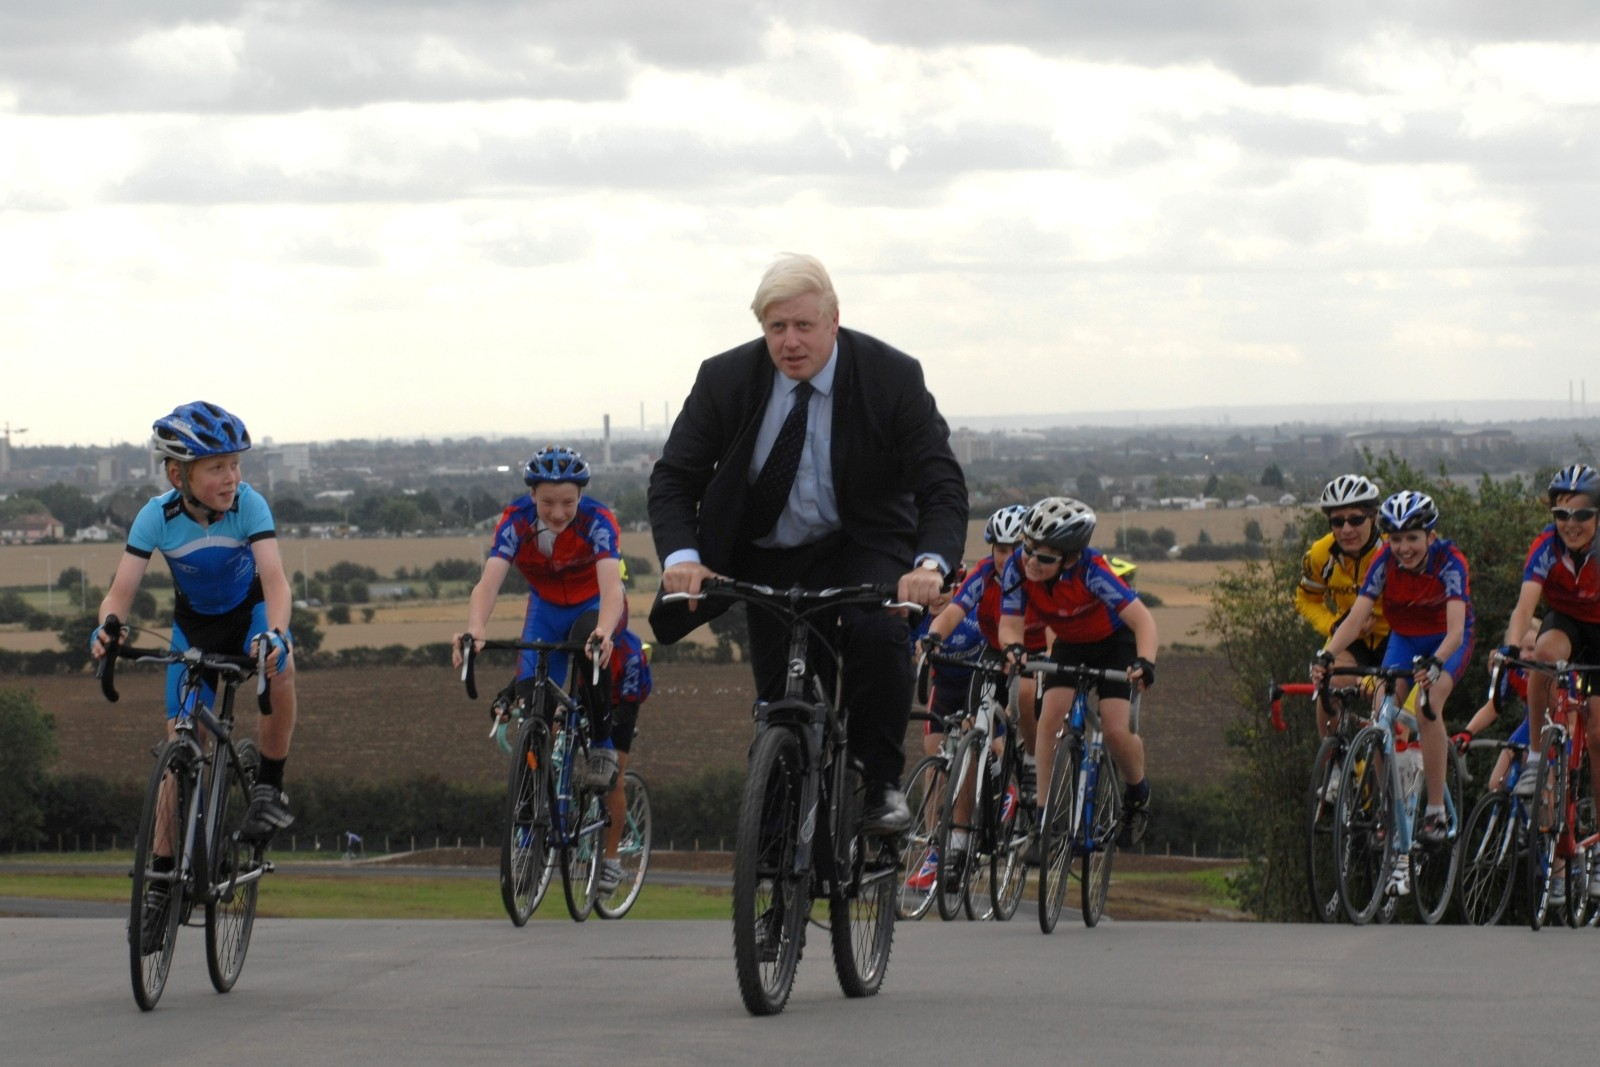 Boris20Johnson20does20a20lap20with20young20riders-5c0e0d2